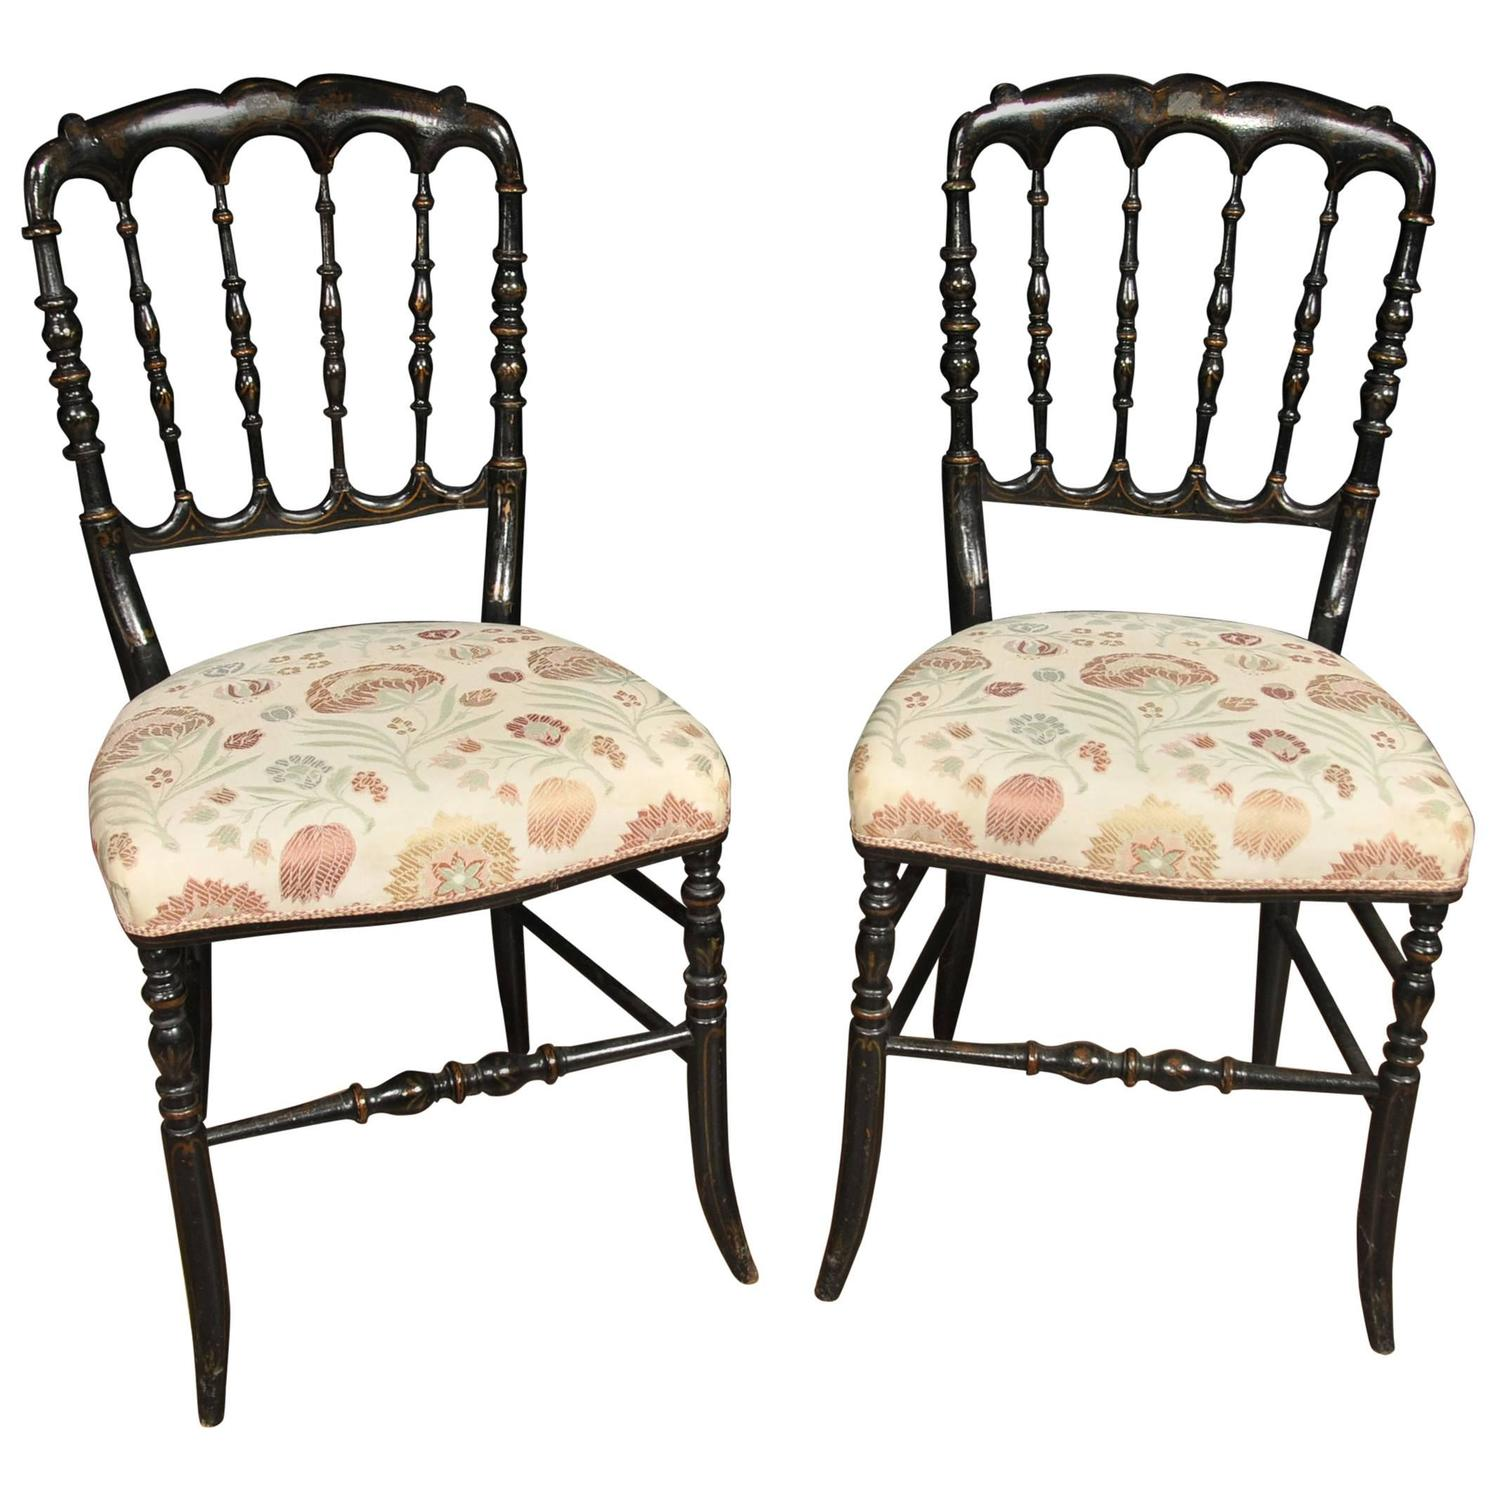 Pair Antique Chinese Black Lacquer Dining Chairs Spindle Back For Sale at  1stdibs - Pair Antique Chinese Black Lacquer Dining Chairs Spindle Back For